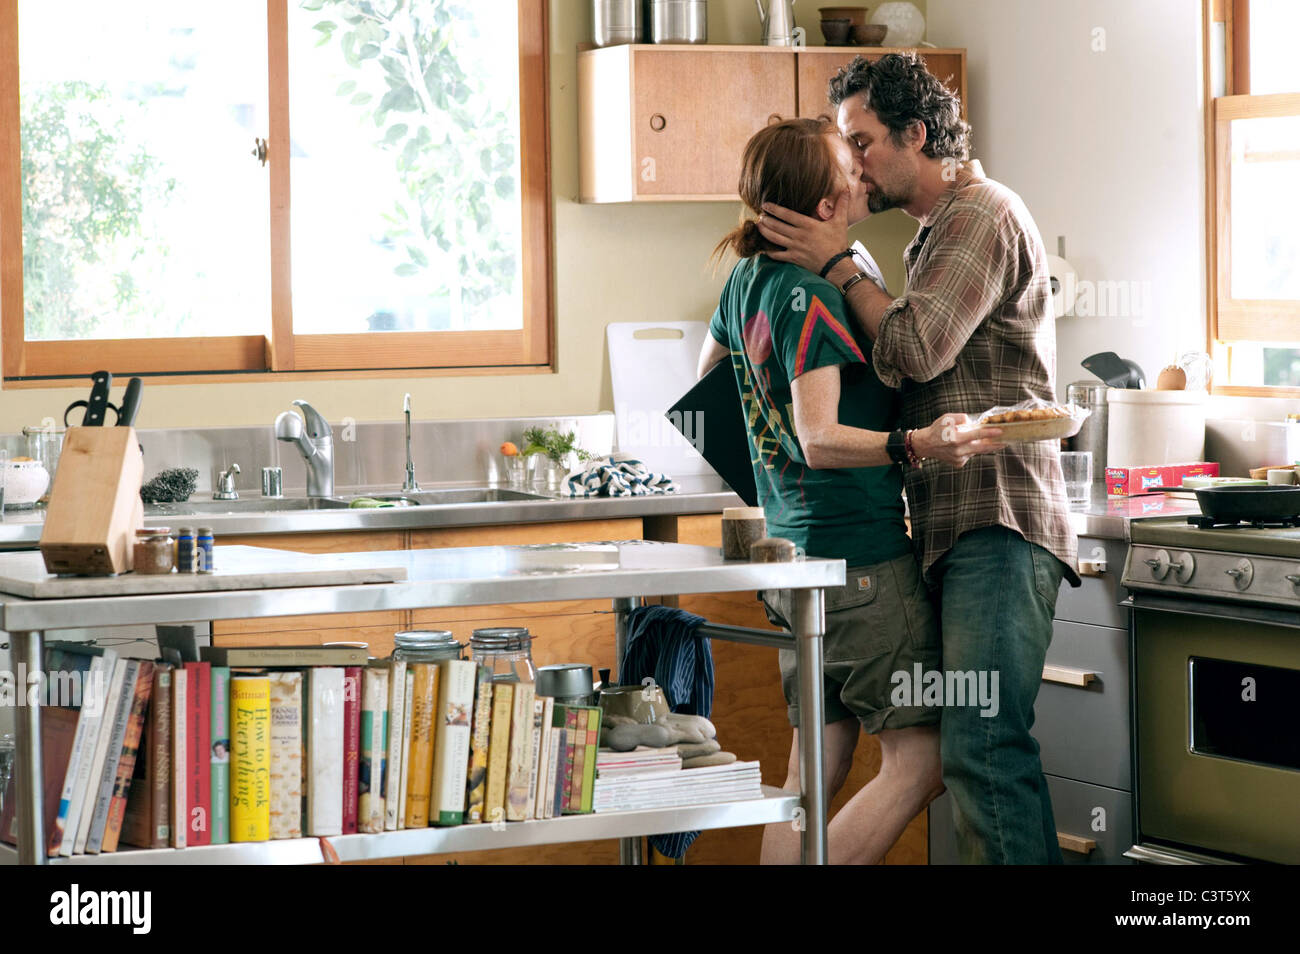 d0f3b22b98f JULIANNE MOORE   MARK RUFFALO THE KIDS ARE ALL RIGHT (2010 Stock ...